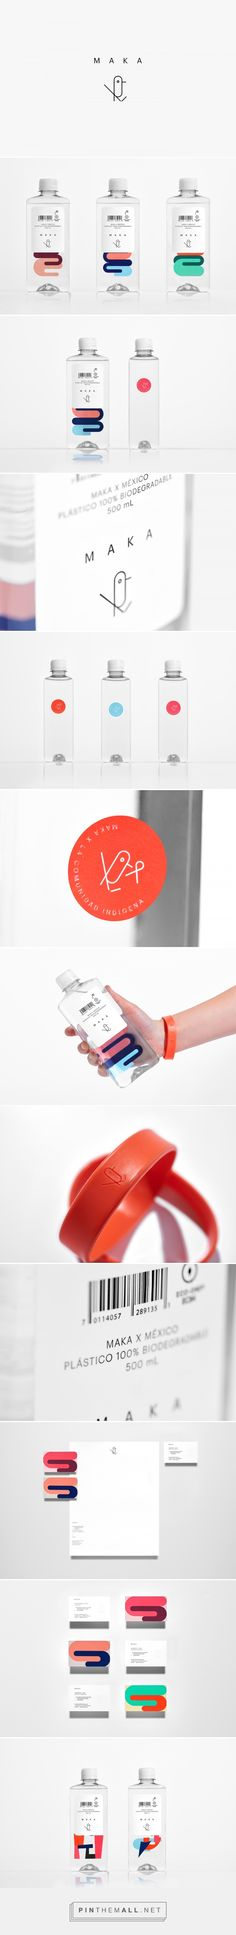 Maka drinking water packaging design by Anagrama - https://www.packagingoftheworld.com/2018/03/maka.html